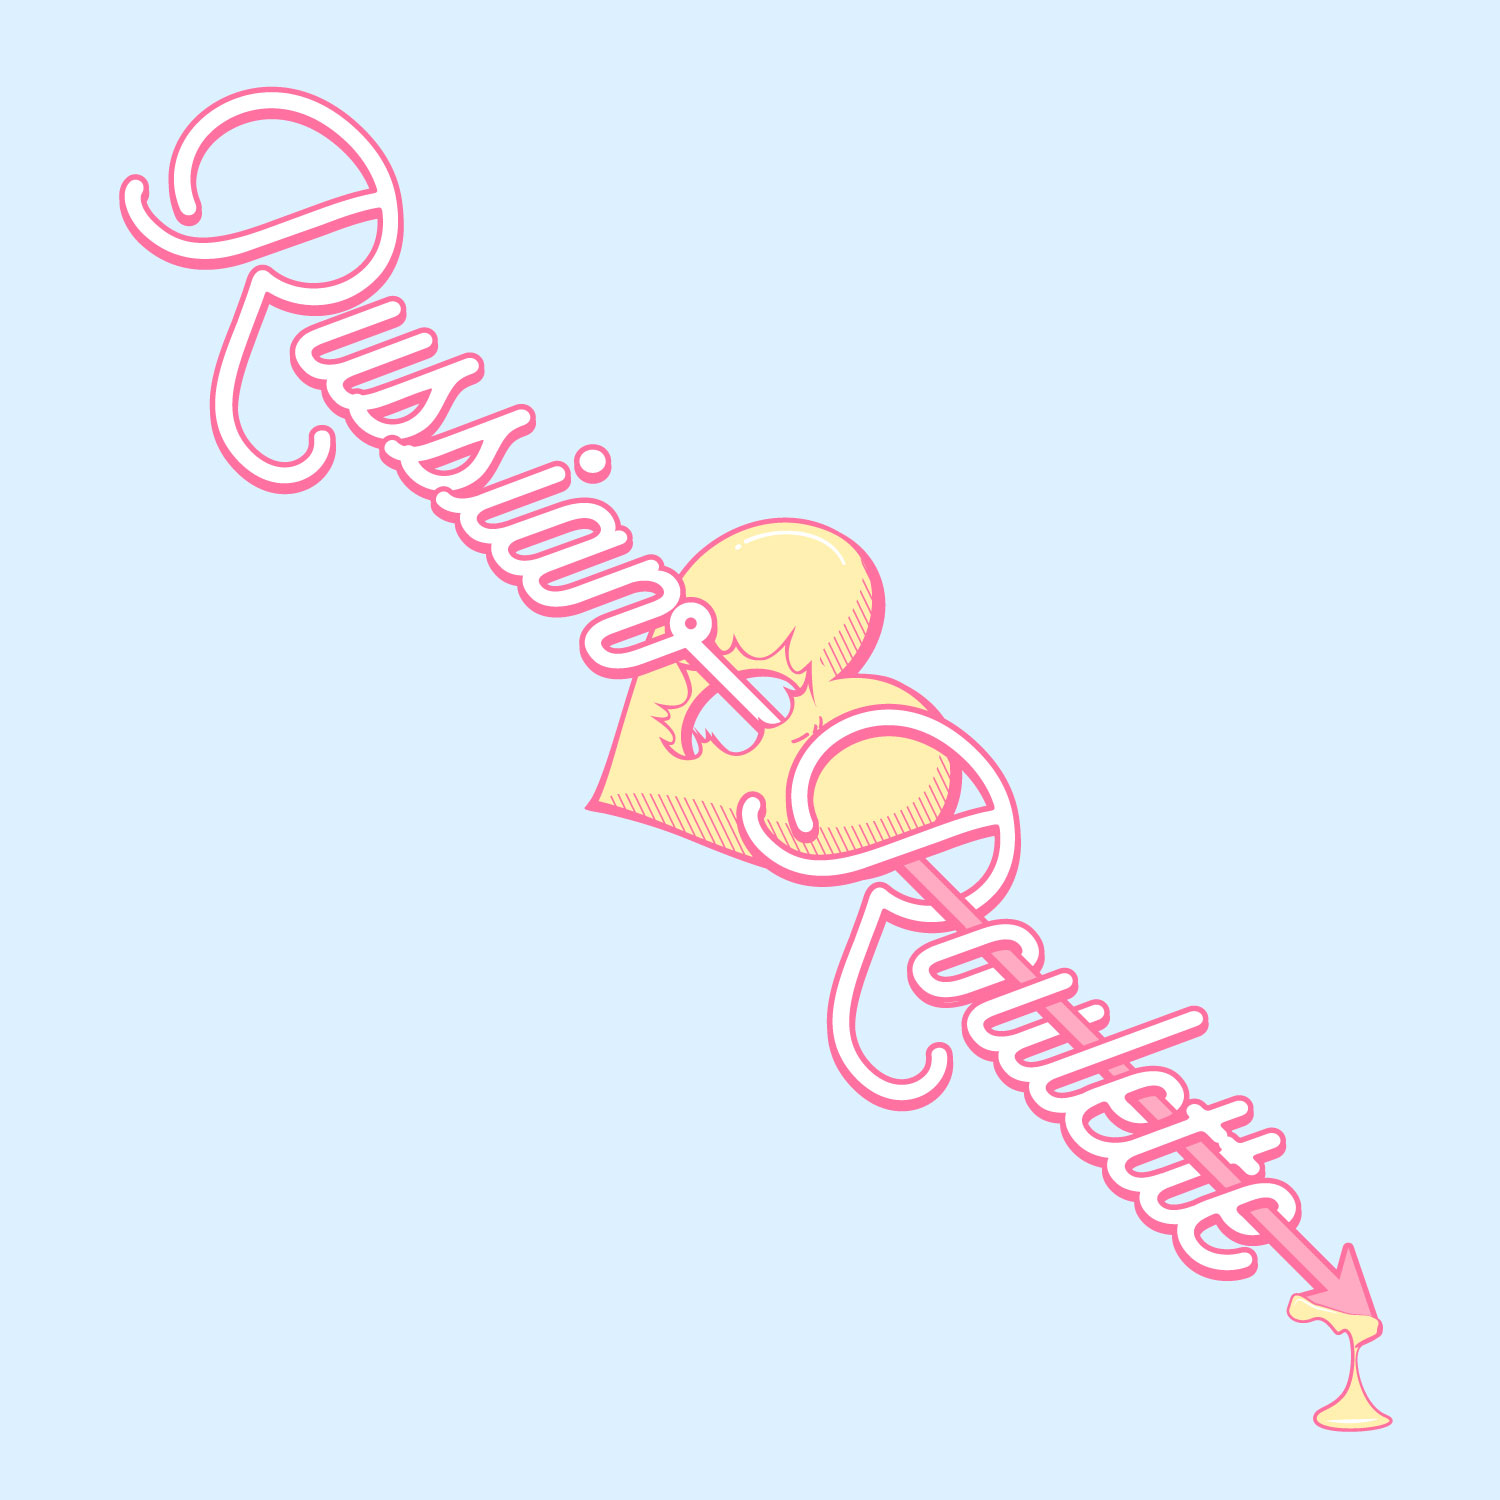 20160907.02.02 Red Velvet - Russian Roulette cover.jpg